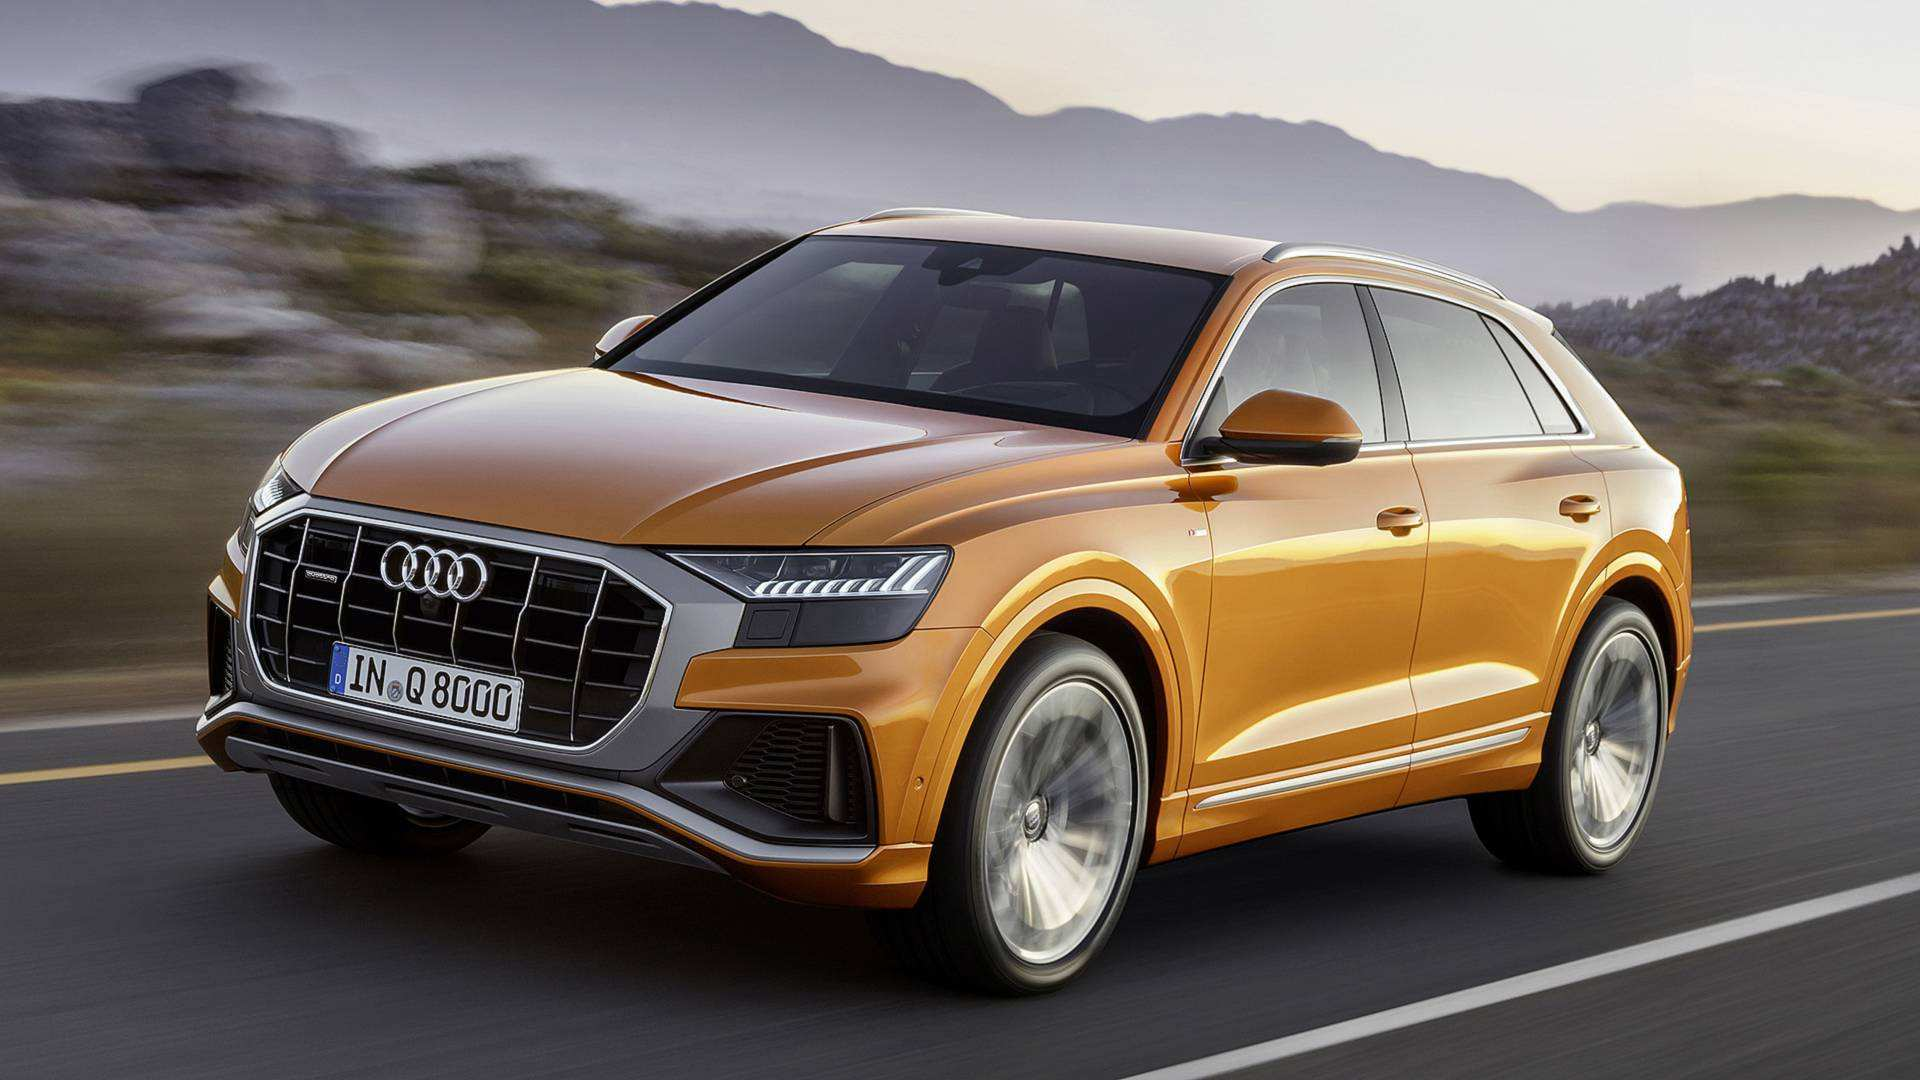 28 Great 2019 Audi Q3 Dimensions Spy Shoot by 2019 Audi Q3 Dimensions